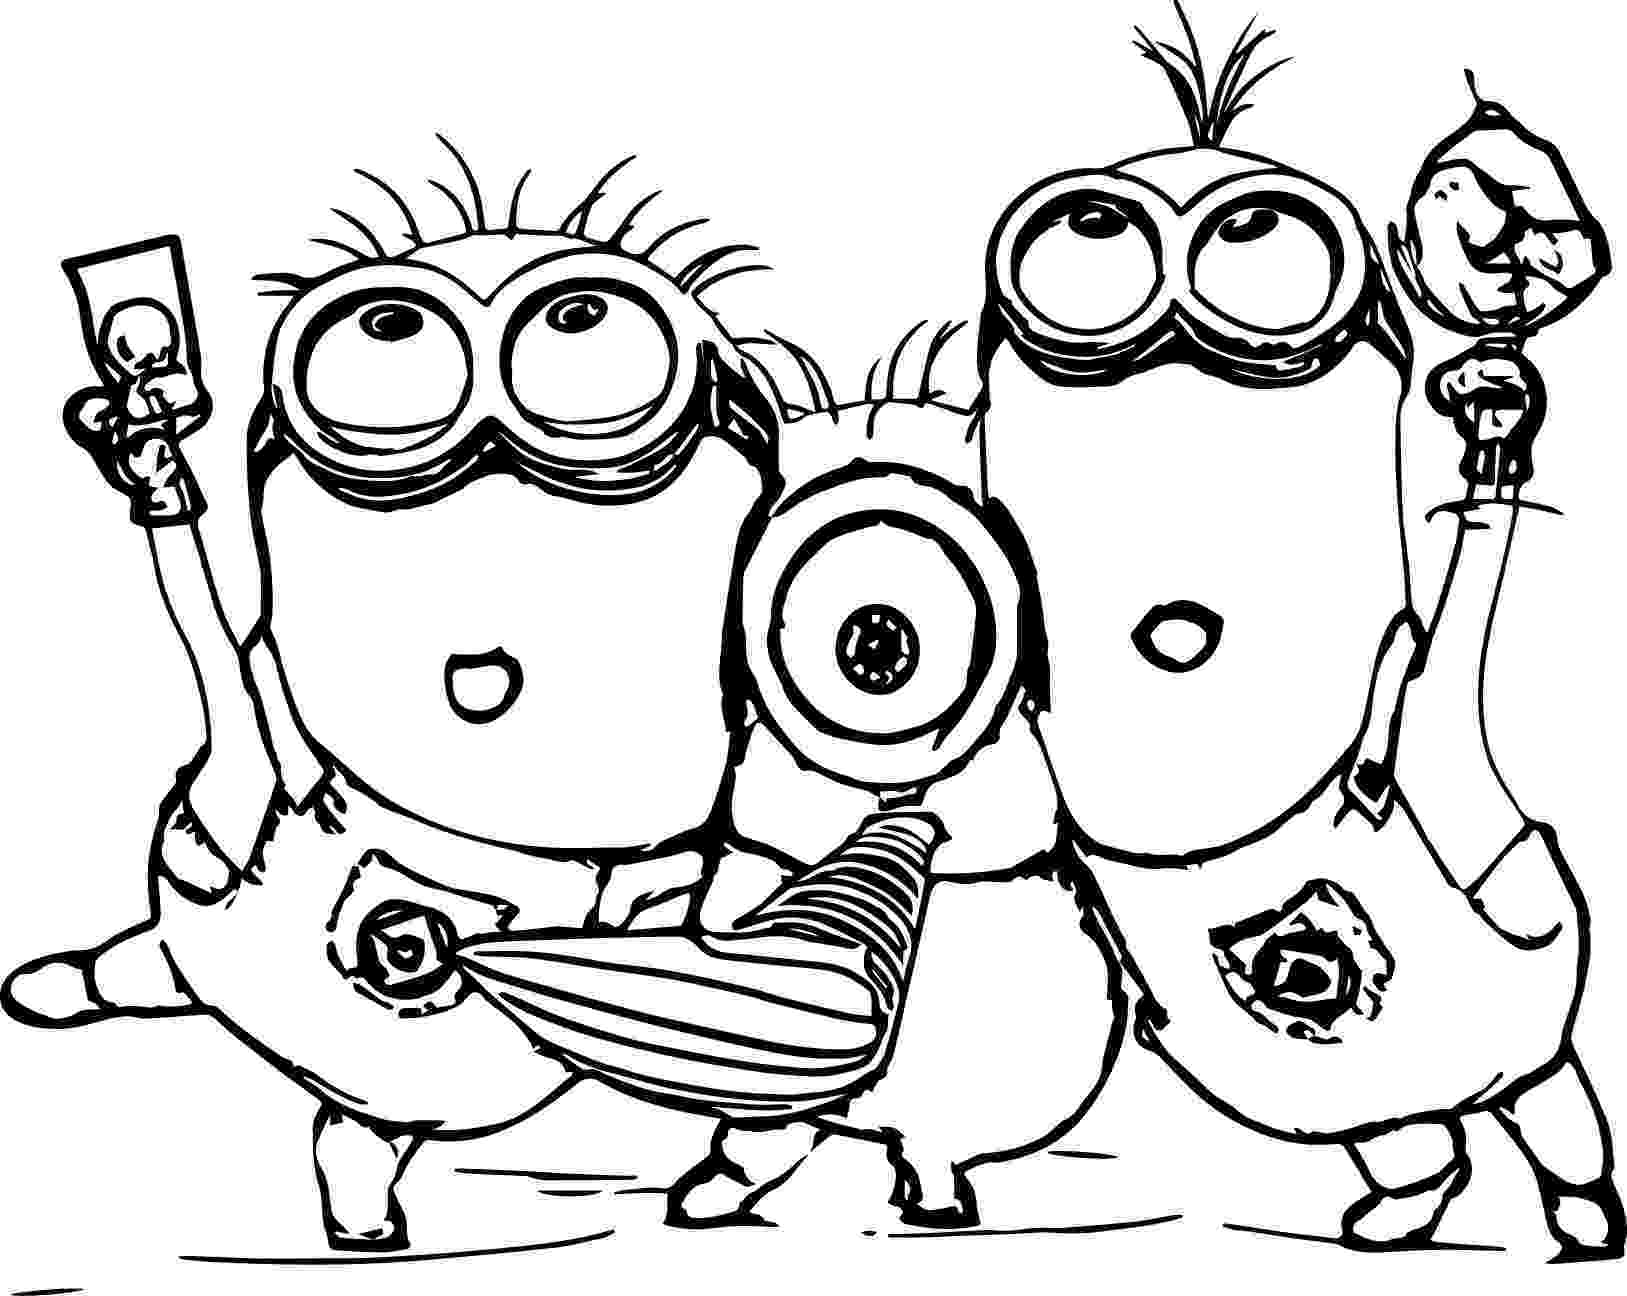 coloring book pages minions free coloring pages printable pictures to color kids pages minions book coloring